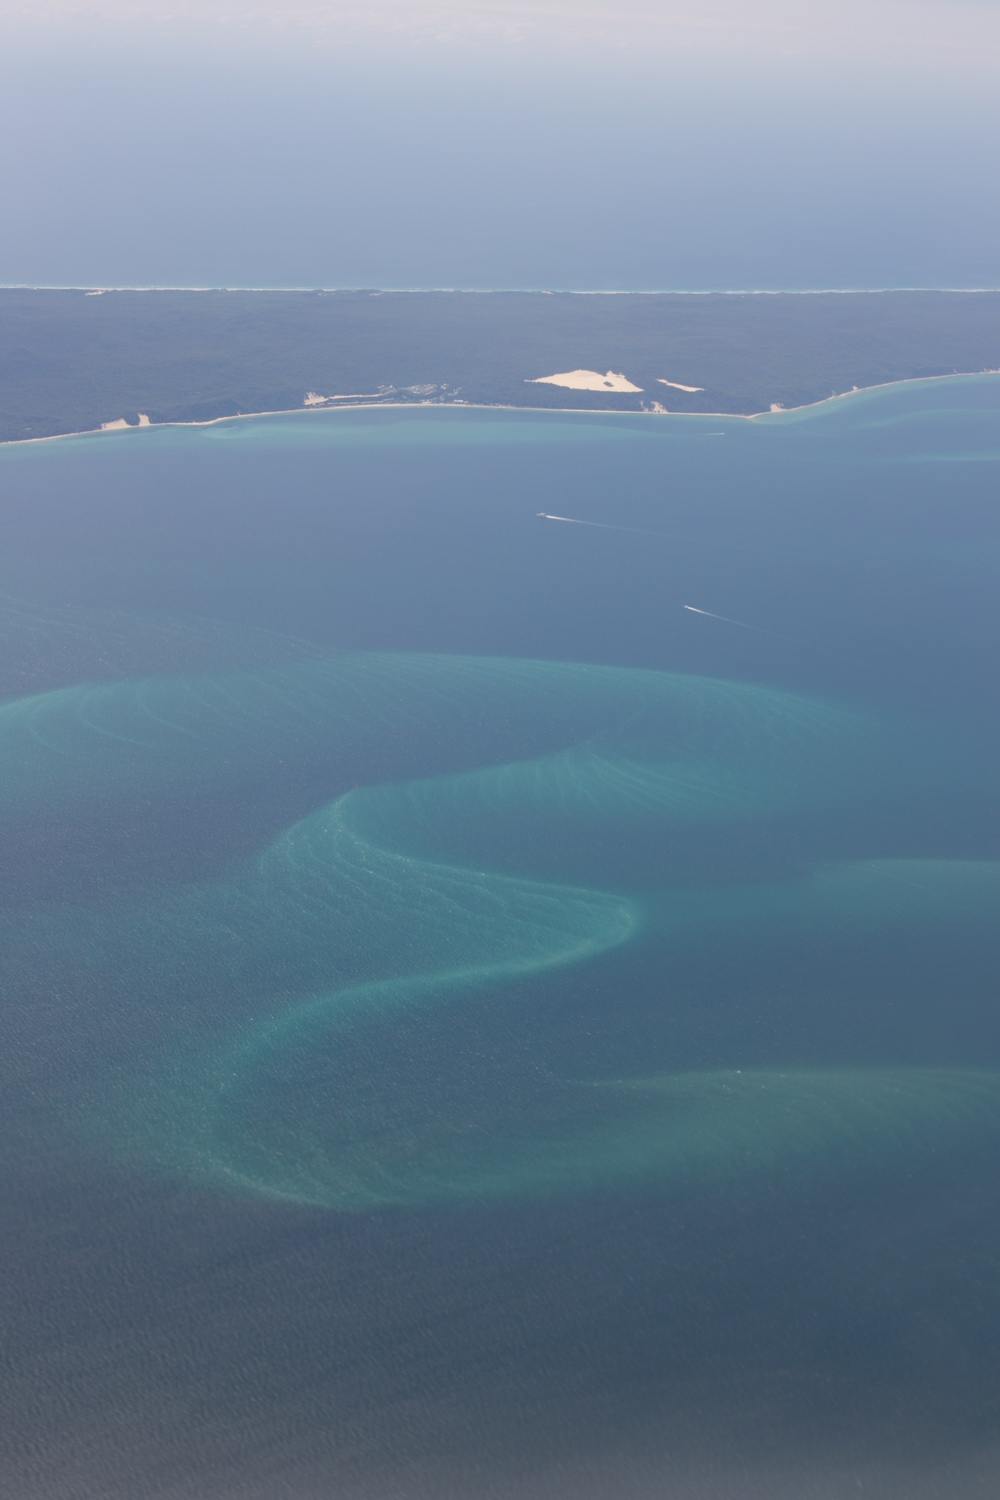 Turquoise patterns made by currents in the sea.